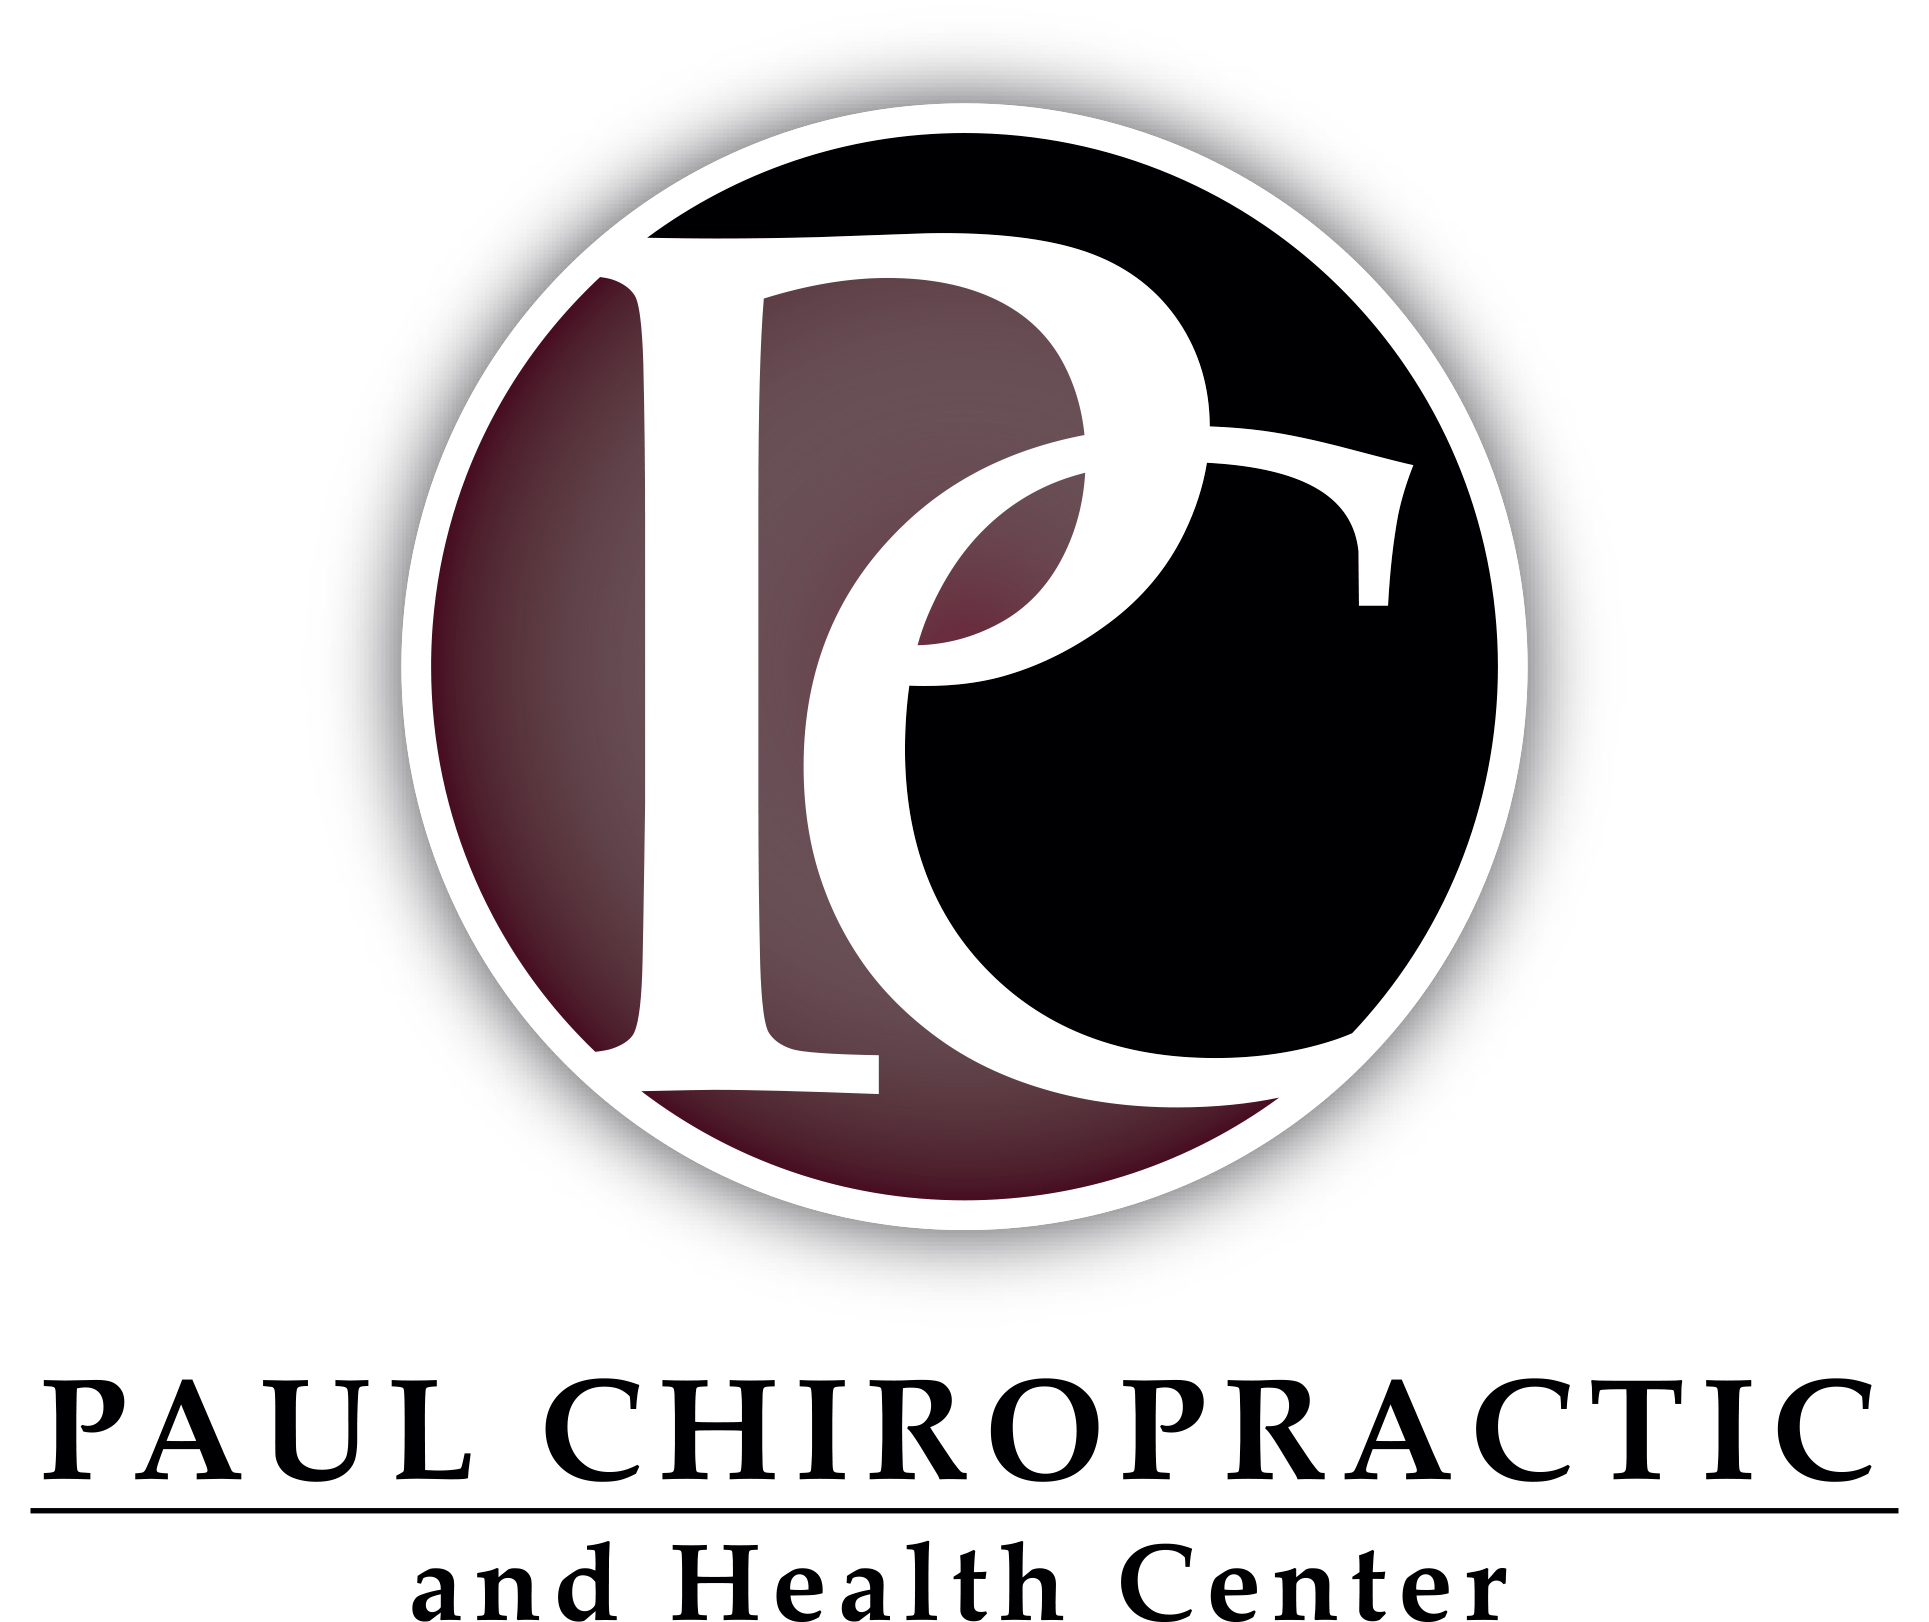 Paul Chiropractic and Health Center